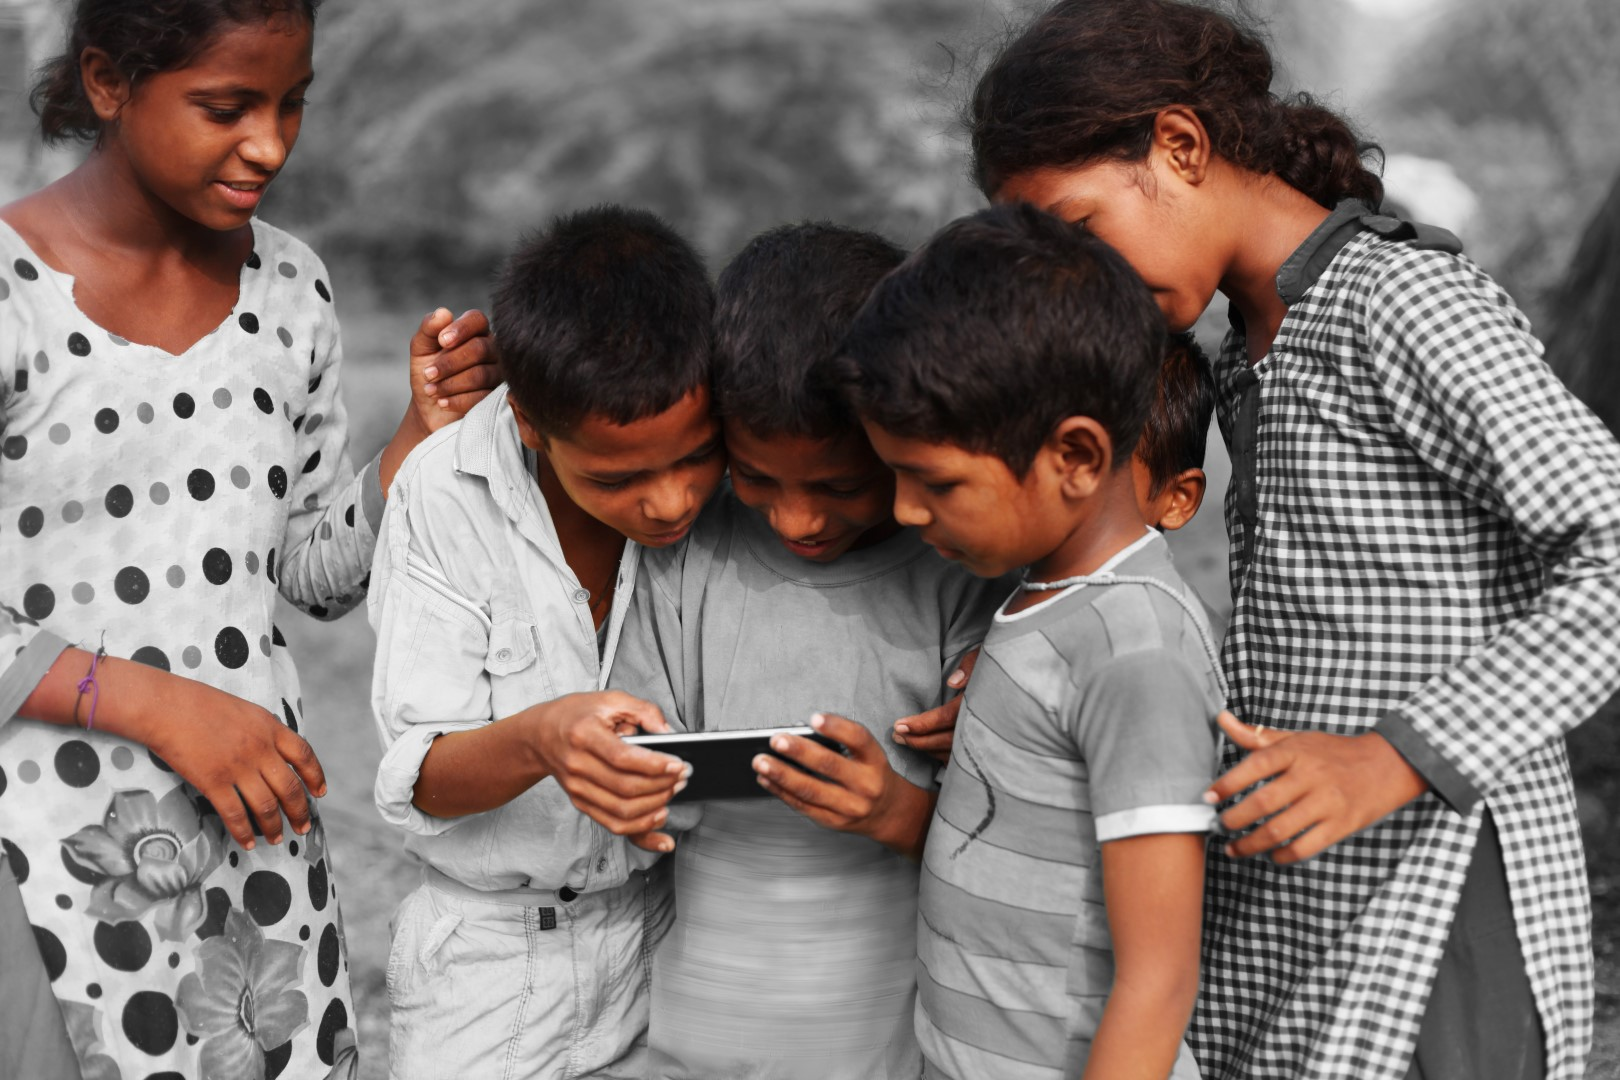 Group-of-children-using-smart-phone.jpeg